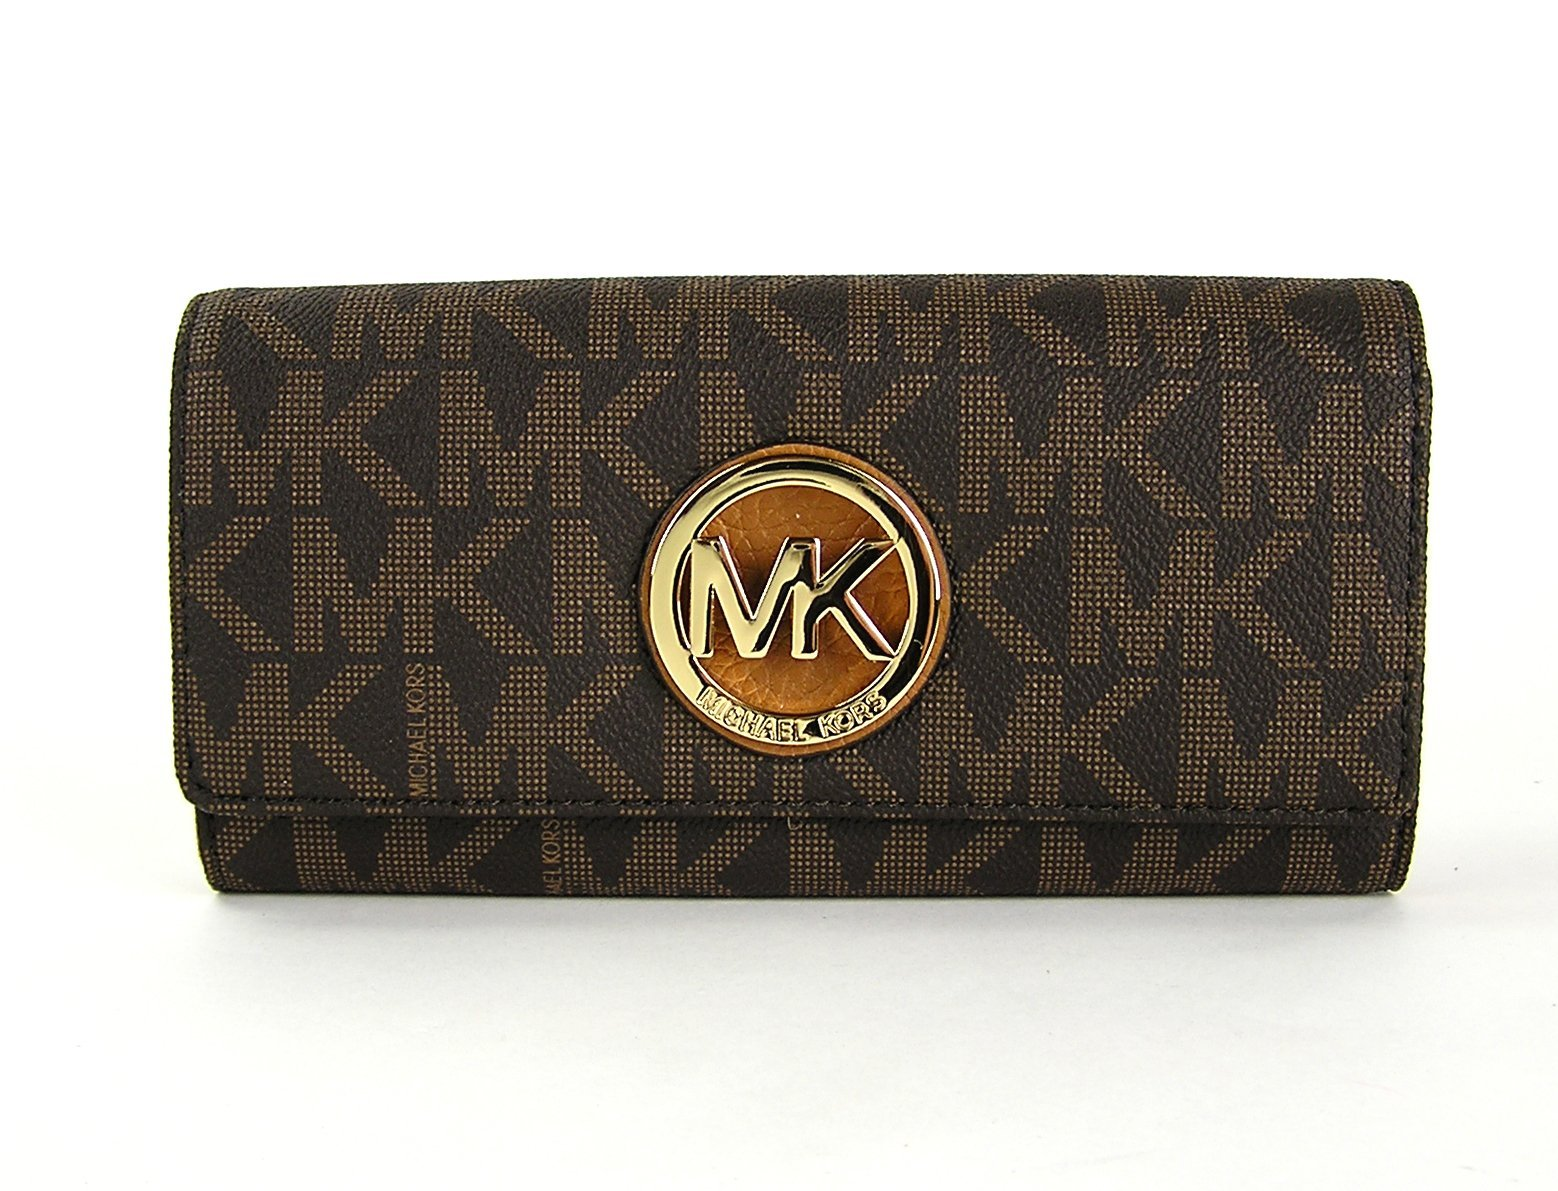 Michael Kors Womens Fulton Signature Long Continental Clutch Wallet Brown/Acorn